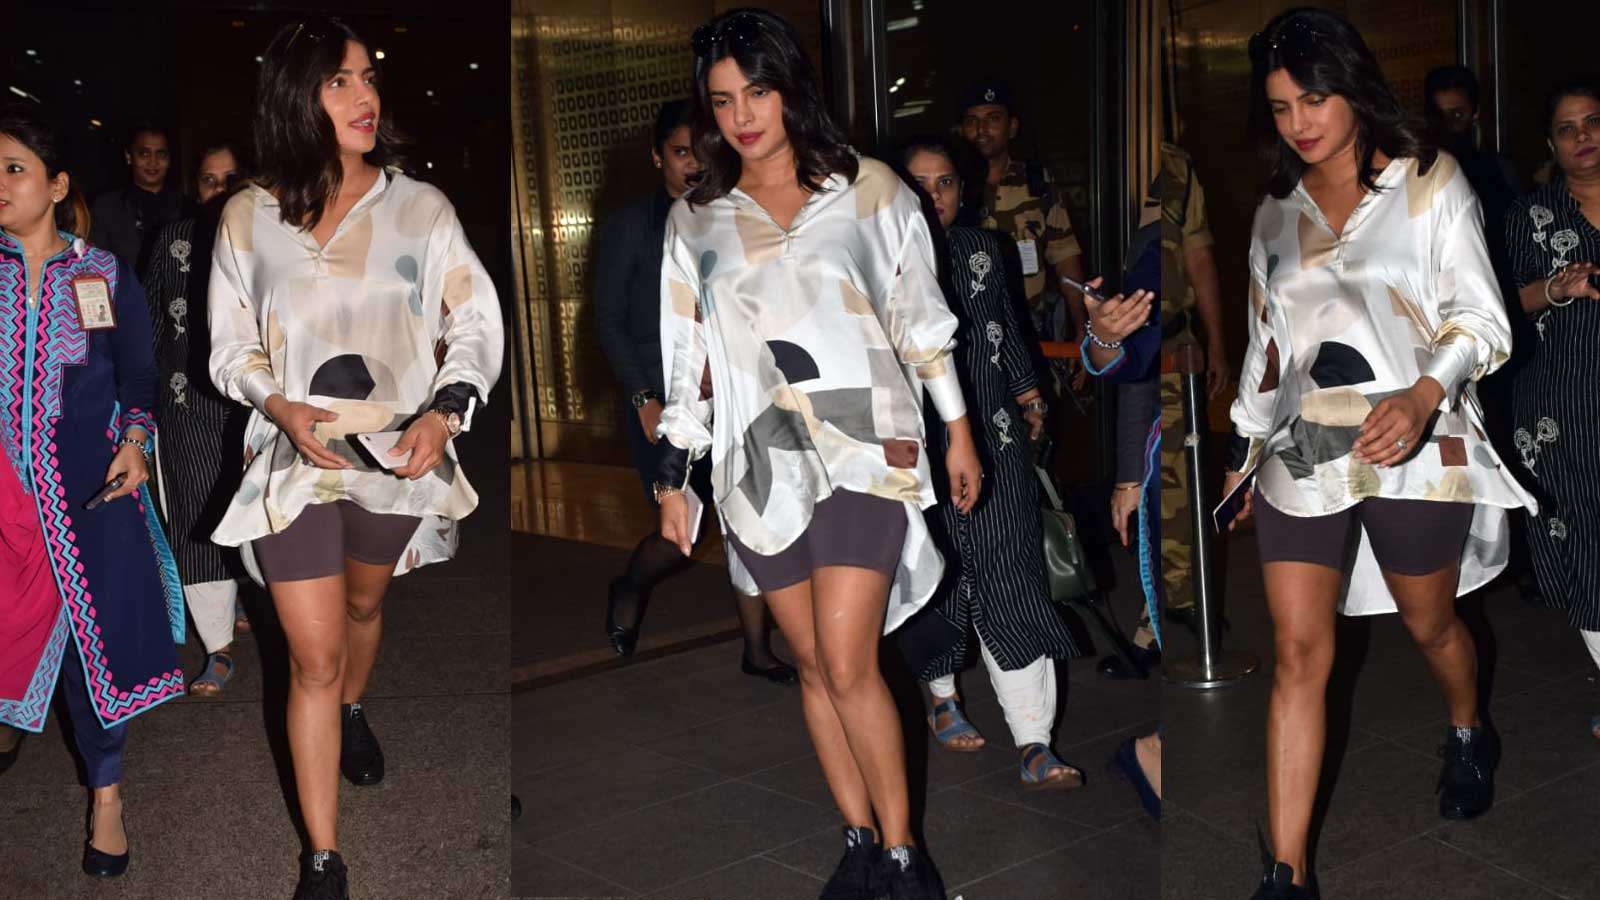 priyanka-chopra-gets-trolled-for-donning-cycling-shorts-as-she-returns-to-mumbai